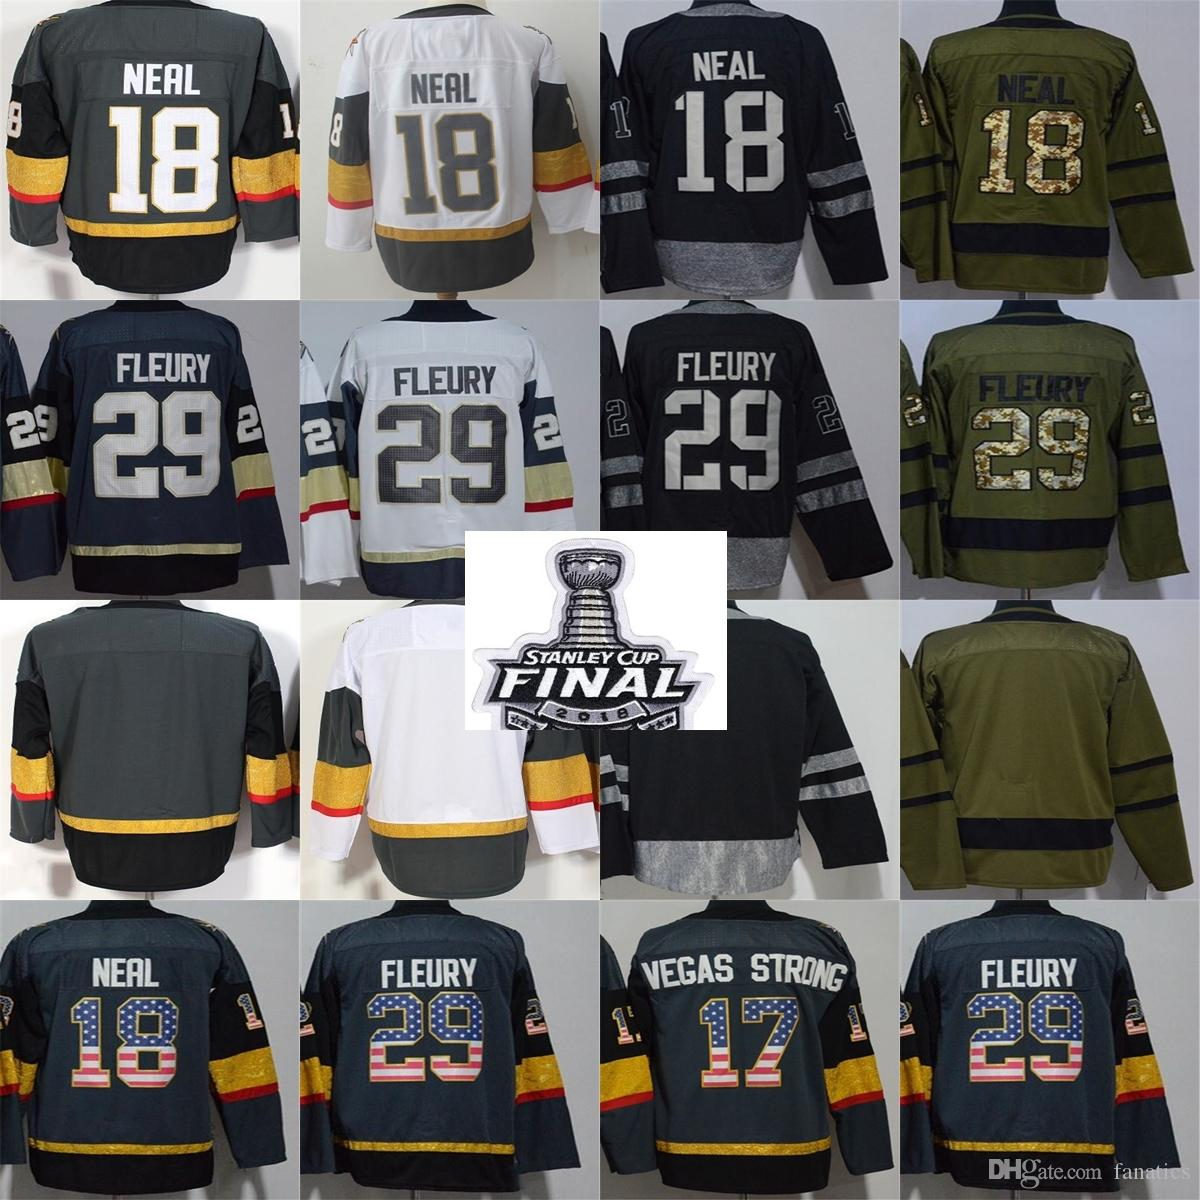 38c8925b7 2018 Stanley Cup Final Patch Men Vegas Golden Knights 29 Marc Andre Fleury  18 James Neal Blank Grey White USA Flag Black Hockey Jerseys UK 2019 From  ...